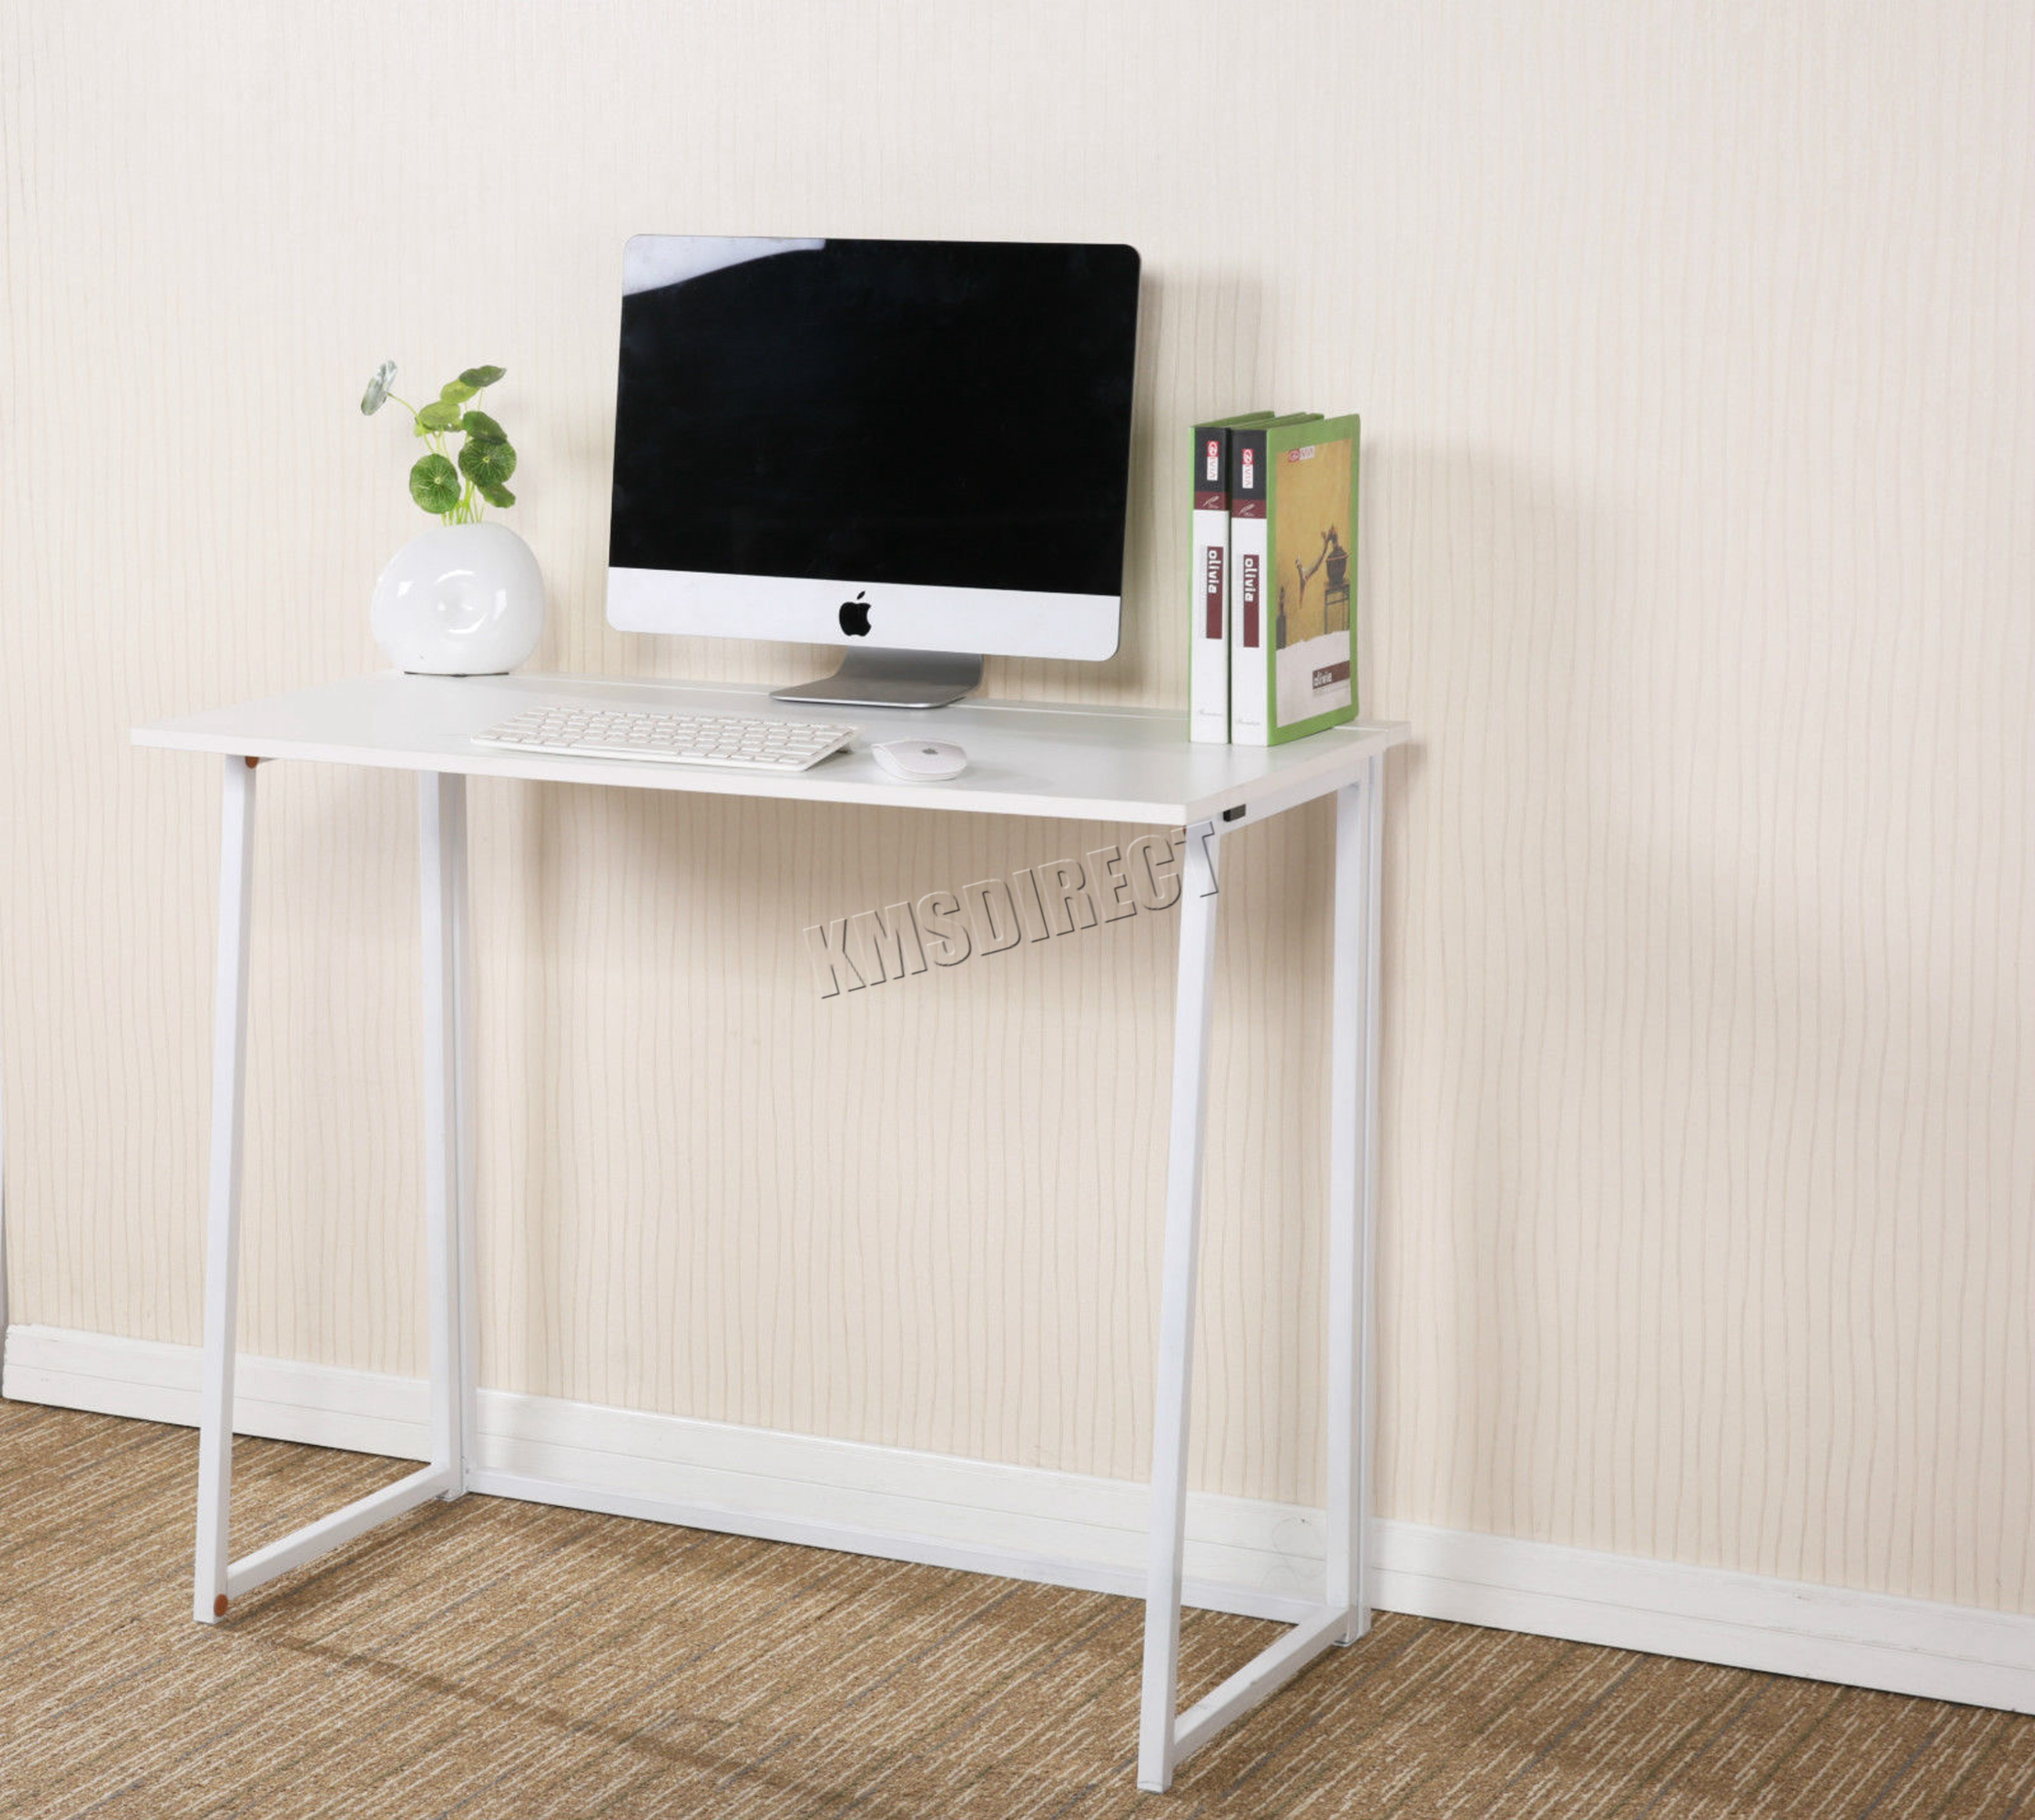 Foxhunter foldable computer desk folding laptop pc table home office cd03 white ebay - Folding desks for small spaces concept ...